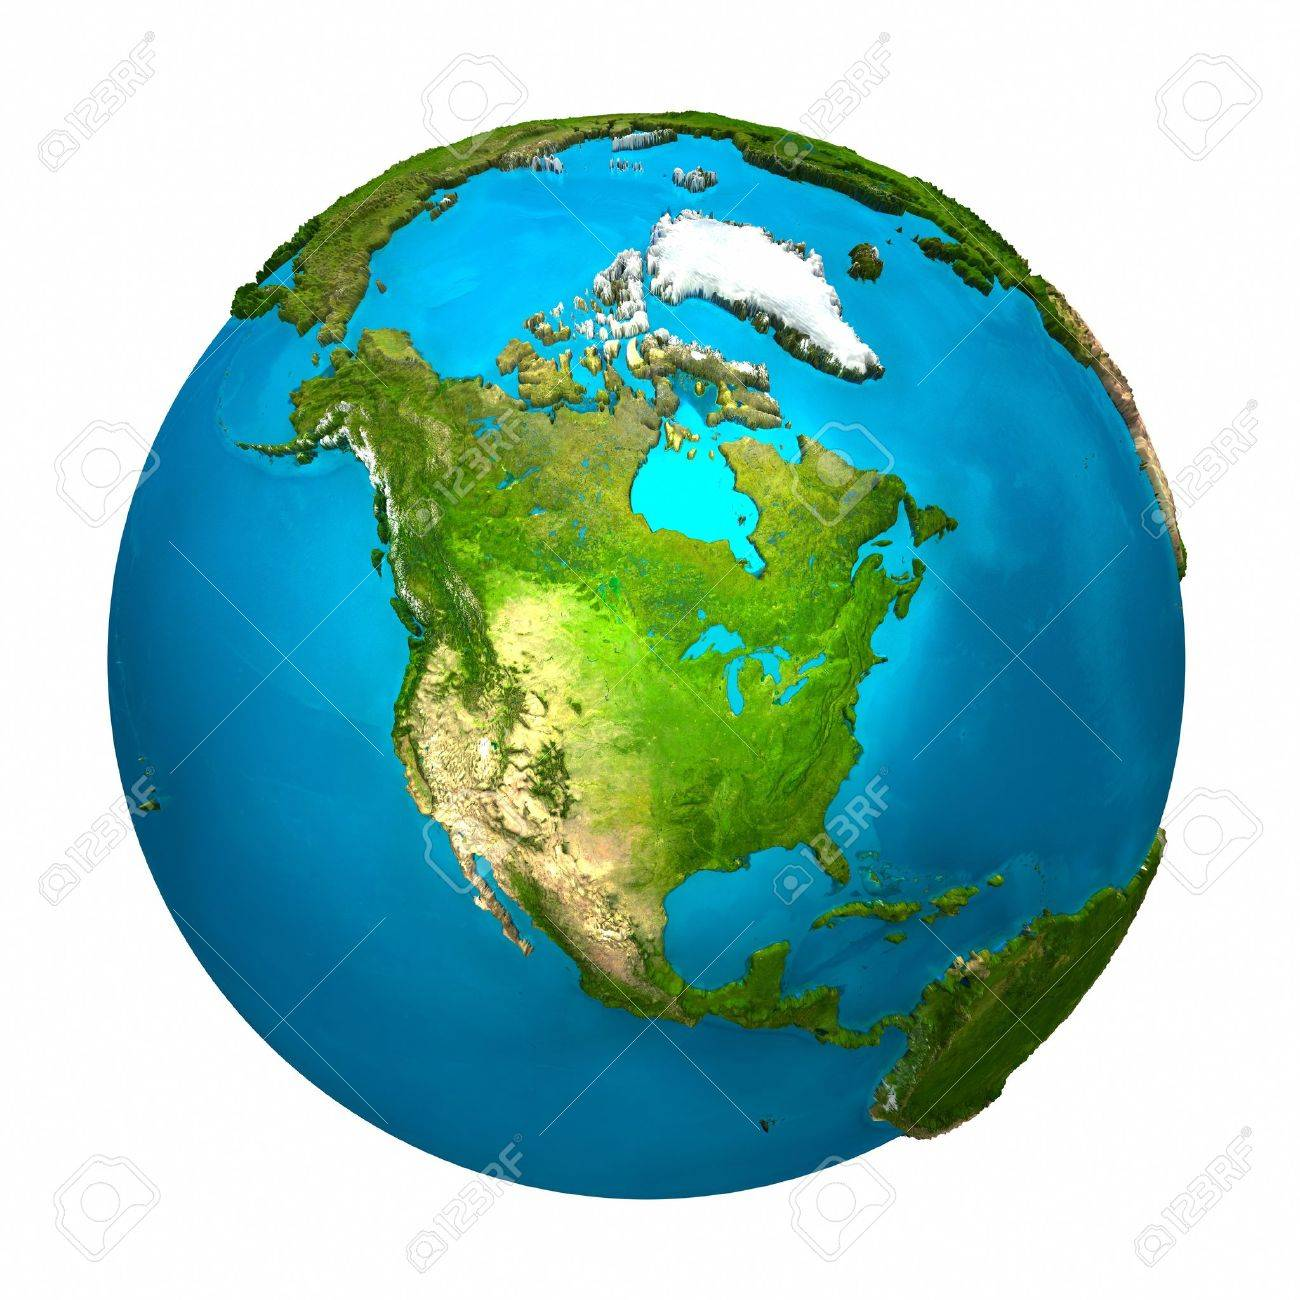 Planet Earth - North America - colorful globe with detailed and realistic surface, 3d render Stock Photo - 8552970